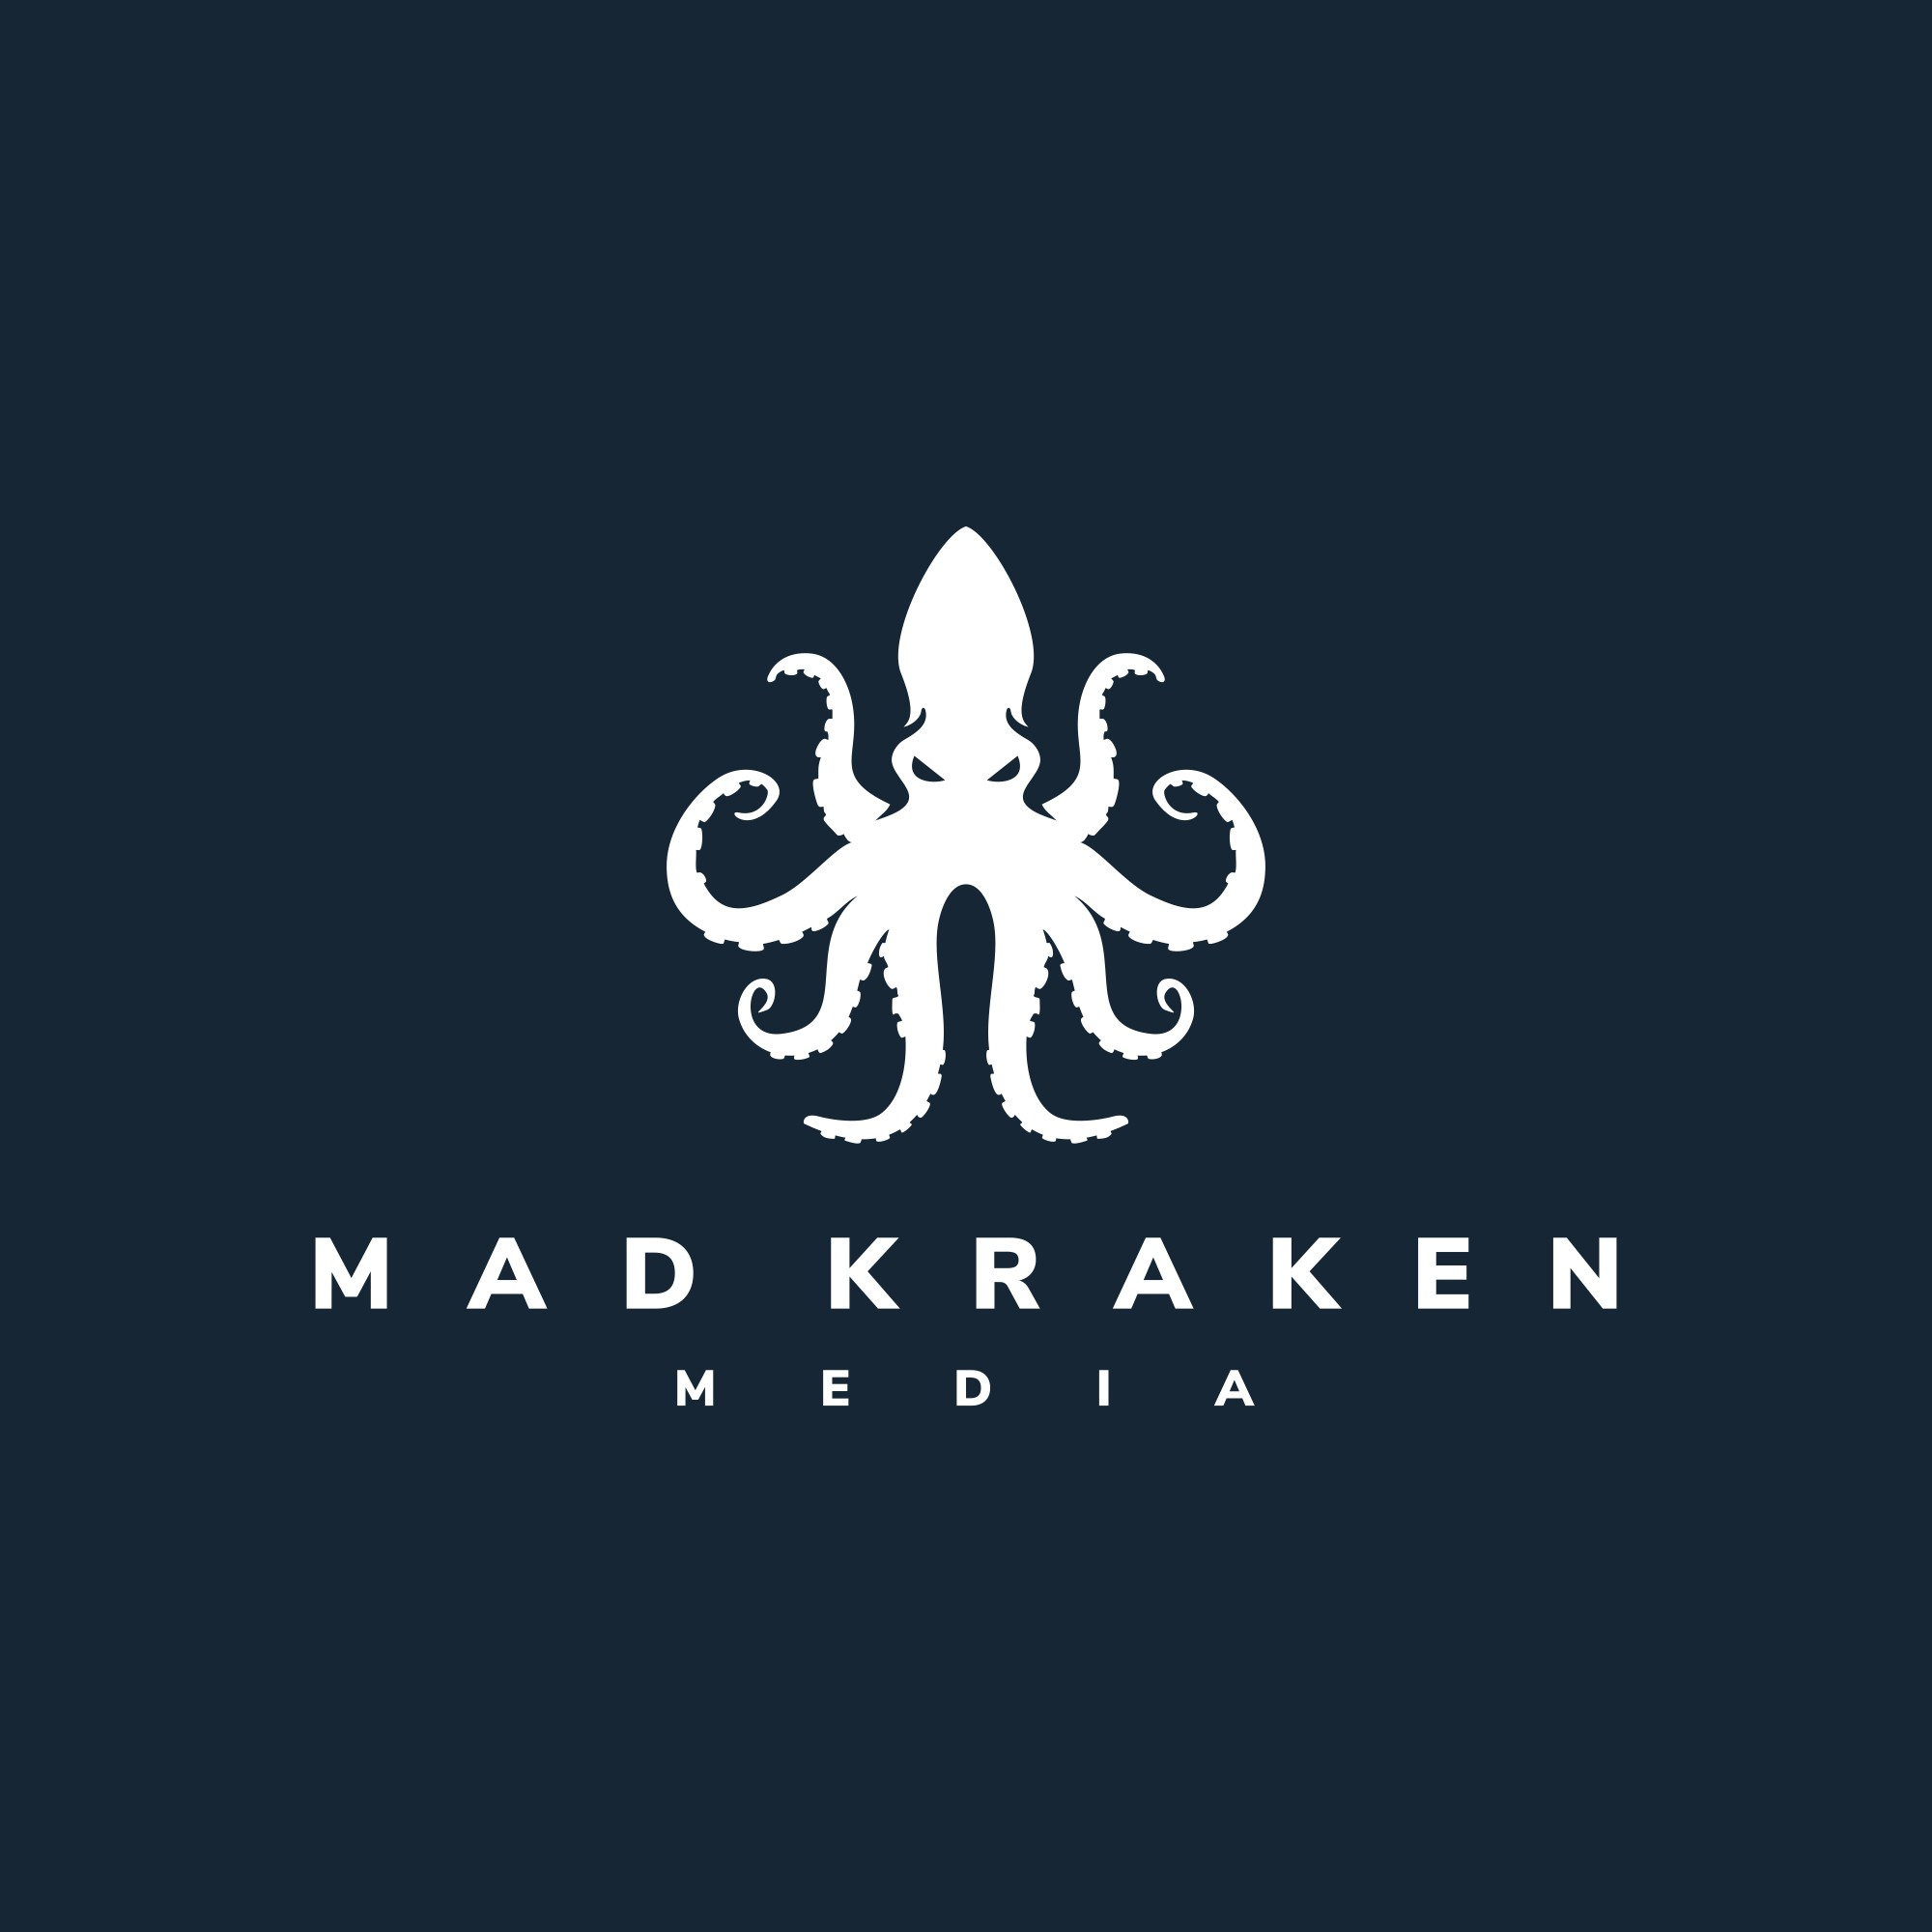 Crazy sea monster logo for a media company